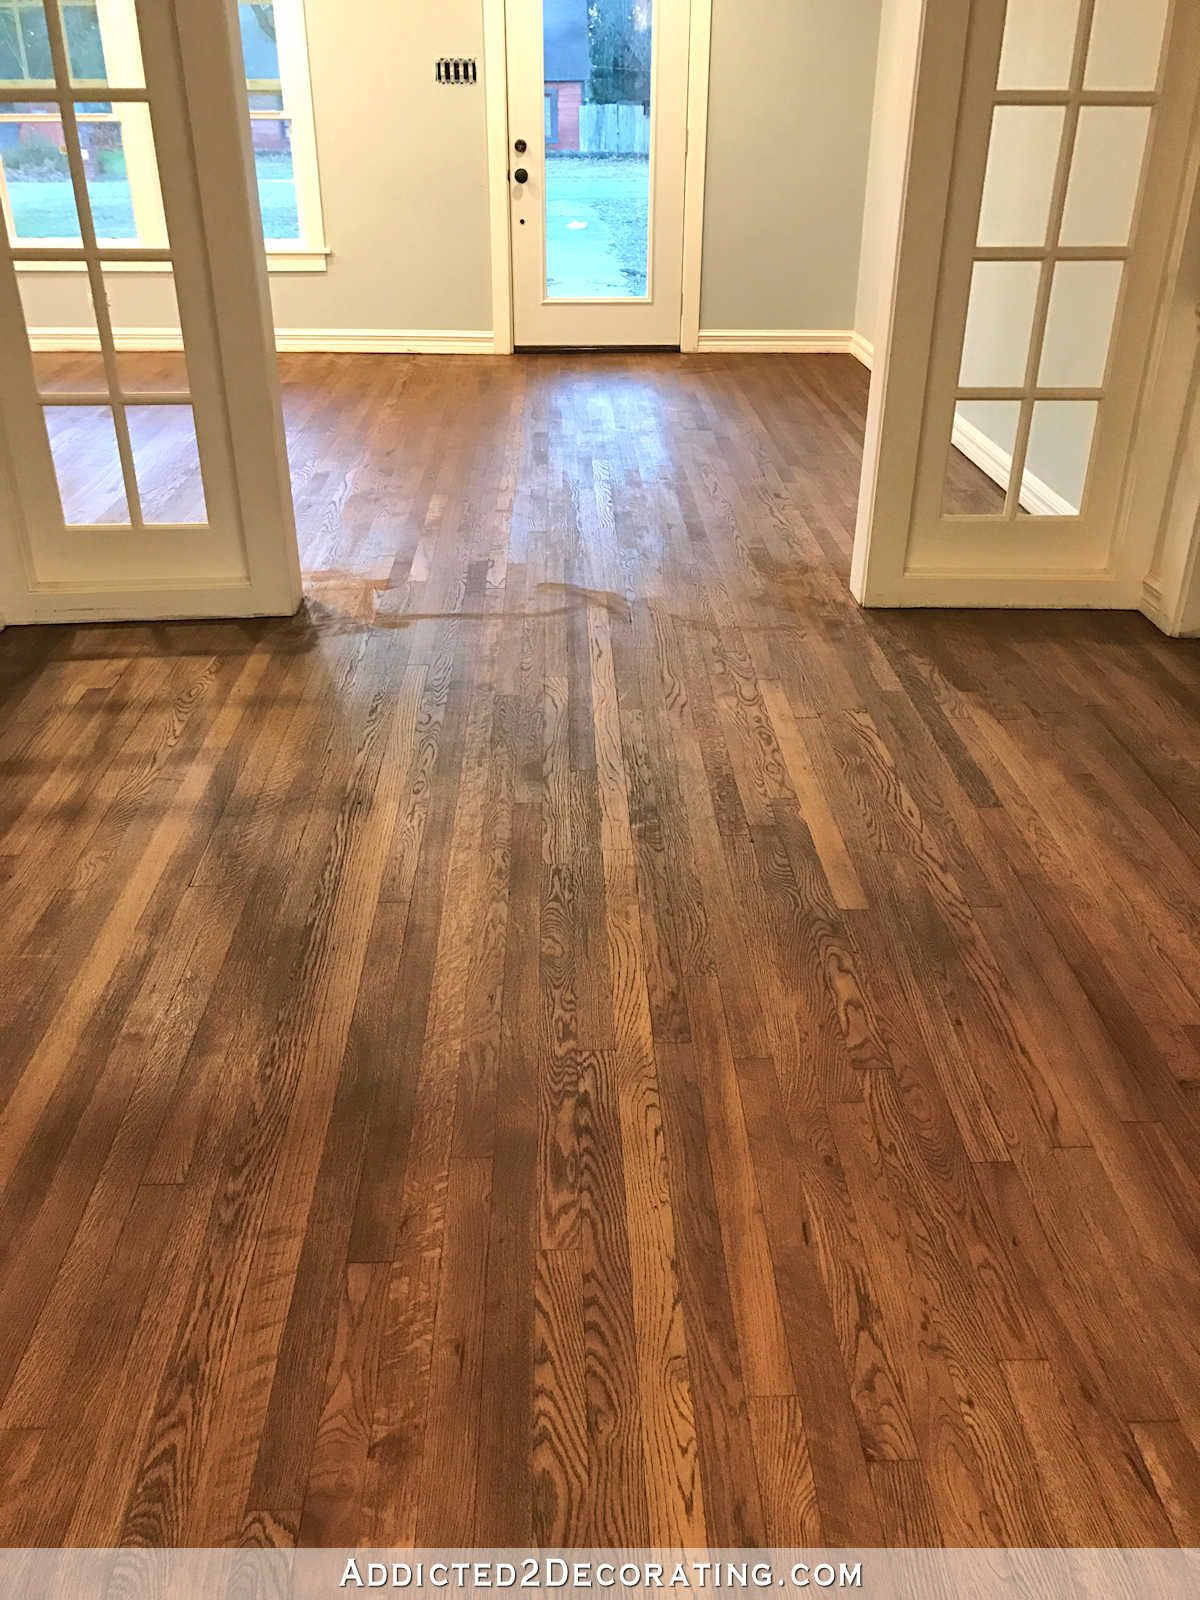 Adventures In Staining My Red Oak Hardwood Floors Products Process Addicted 2 Decorating In 2020 Red Oak Hardwood Red Oak Hardwood Floors Oak Hardwood Flooring